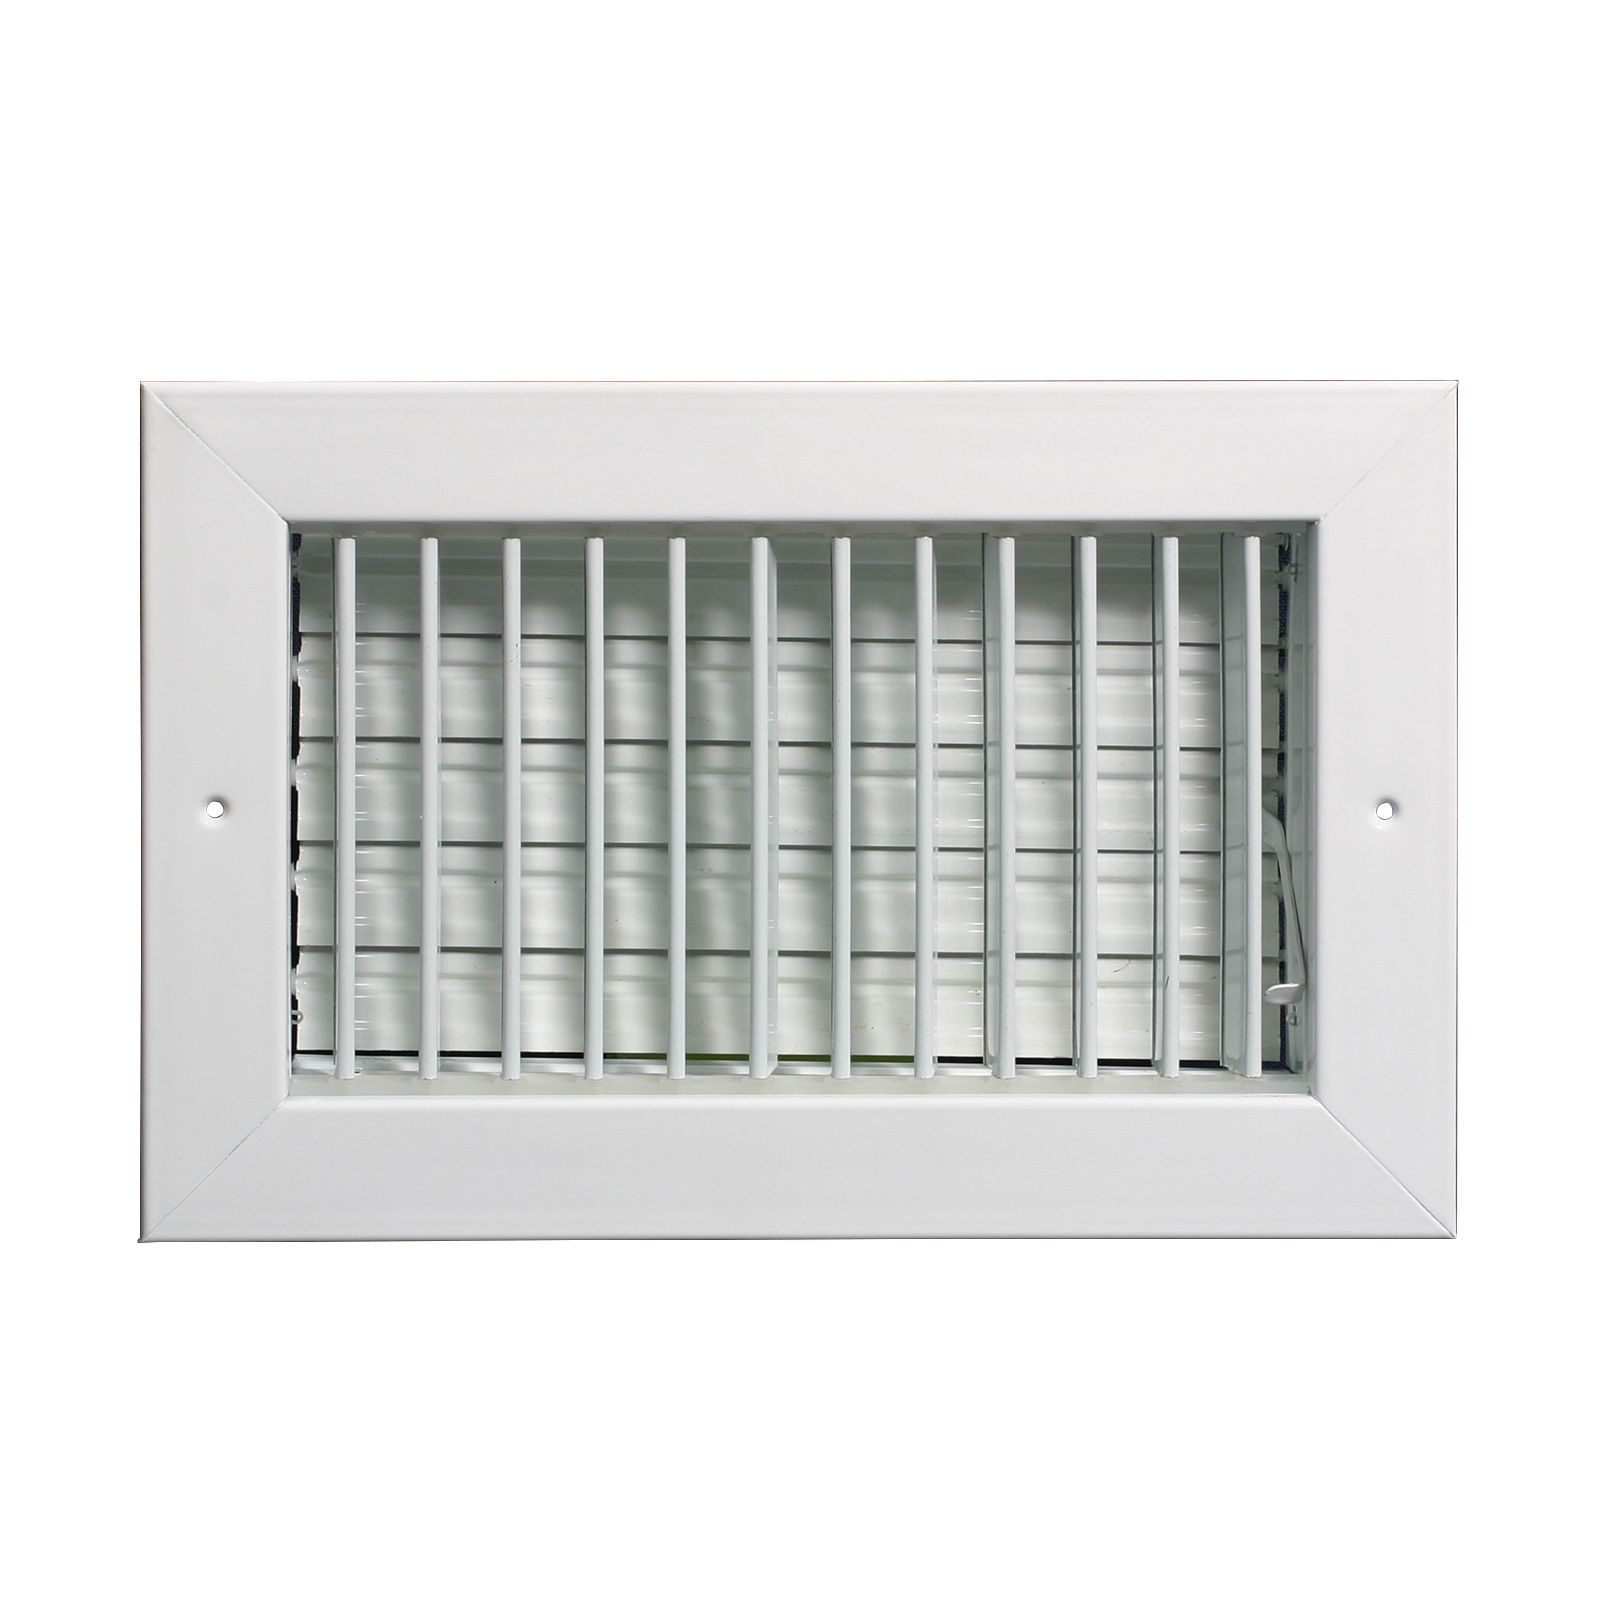 "Grille Tech VM1008 - Aluminum Vertical Blade Sidewall Register , Multi-Shutter Damper 10"" X 8"" White"